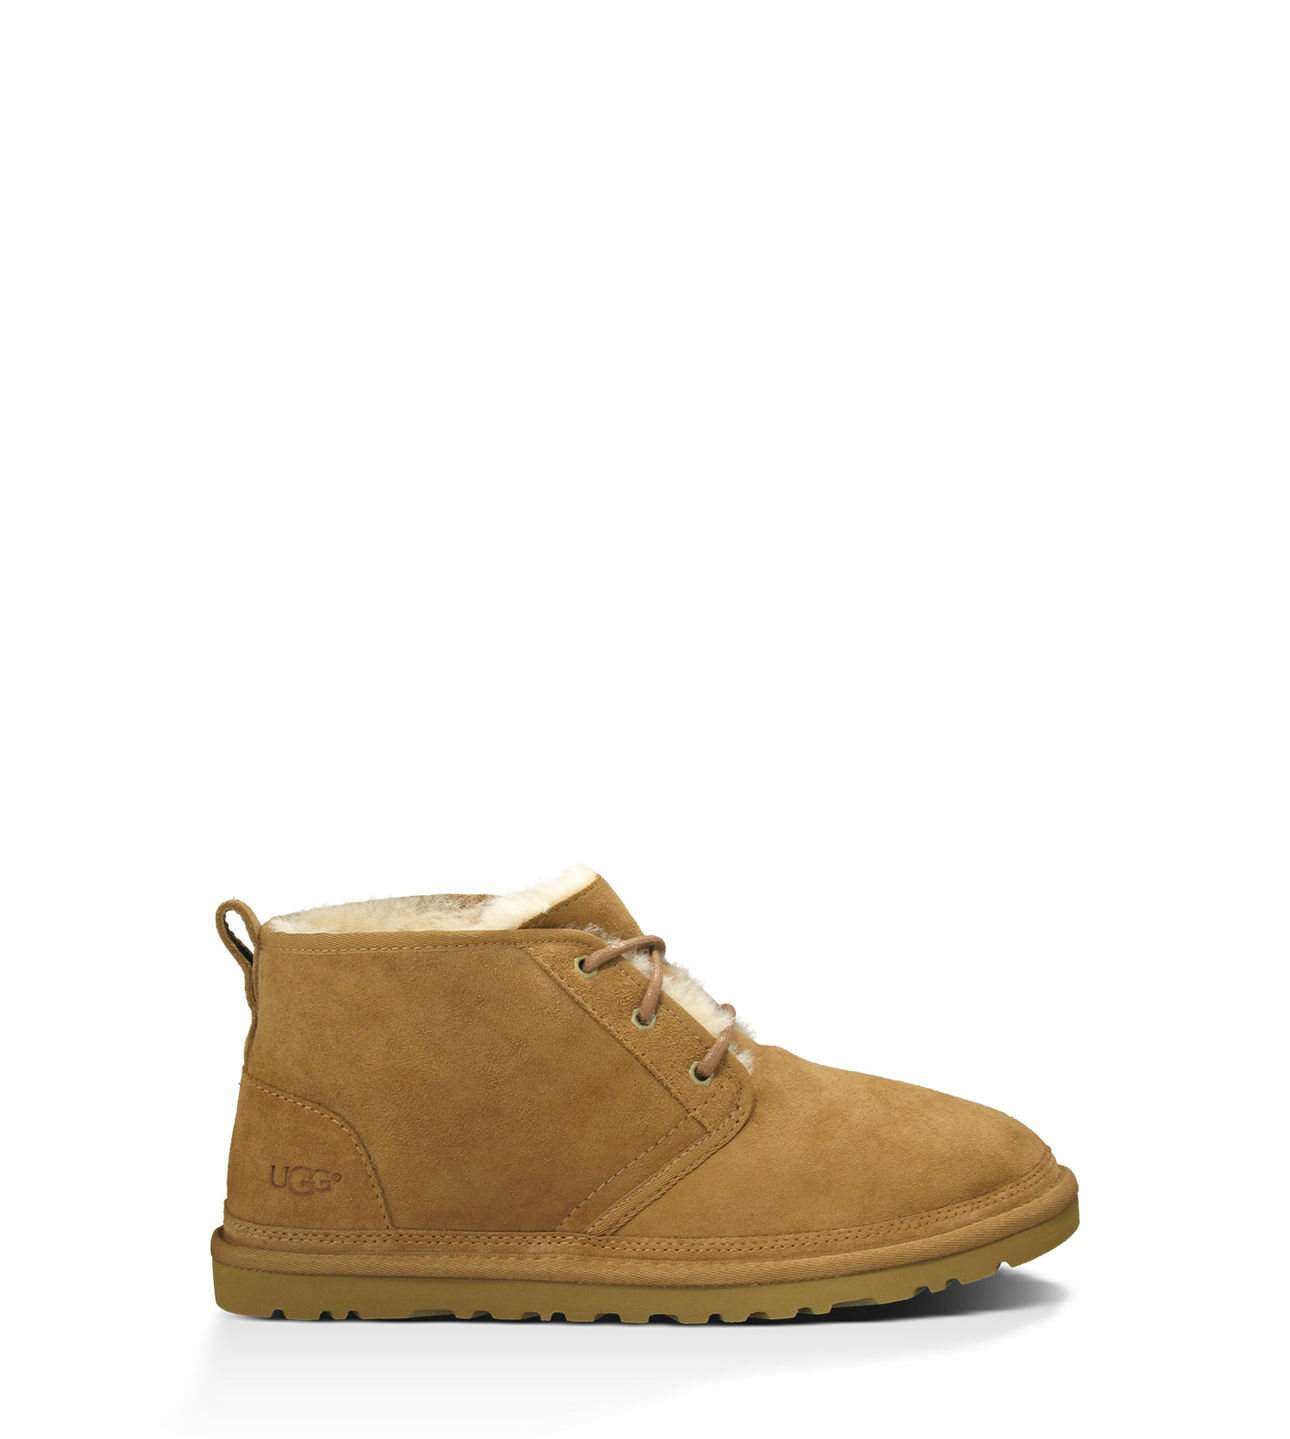 ugg boots uk sale official